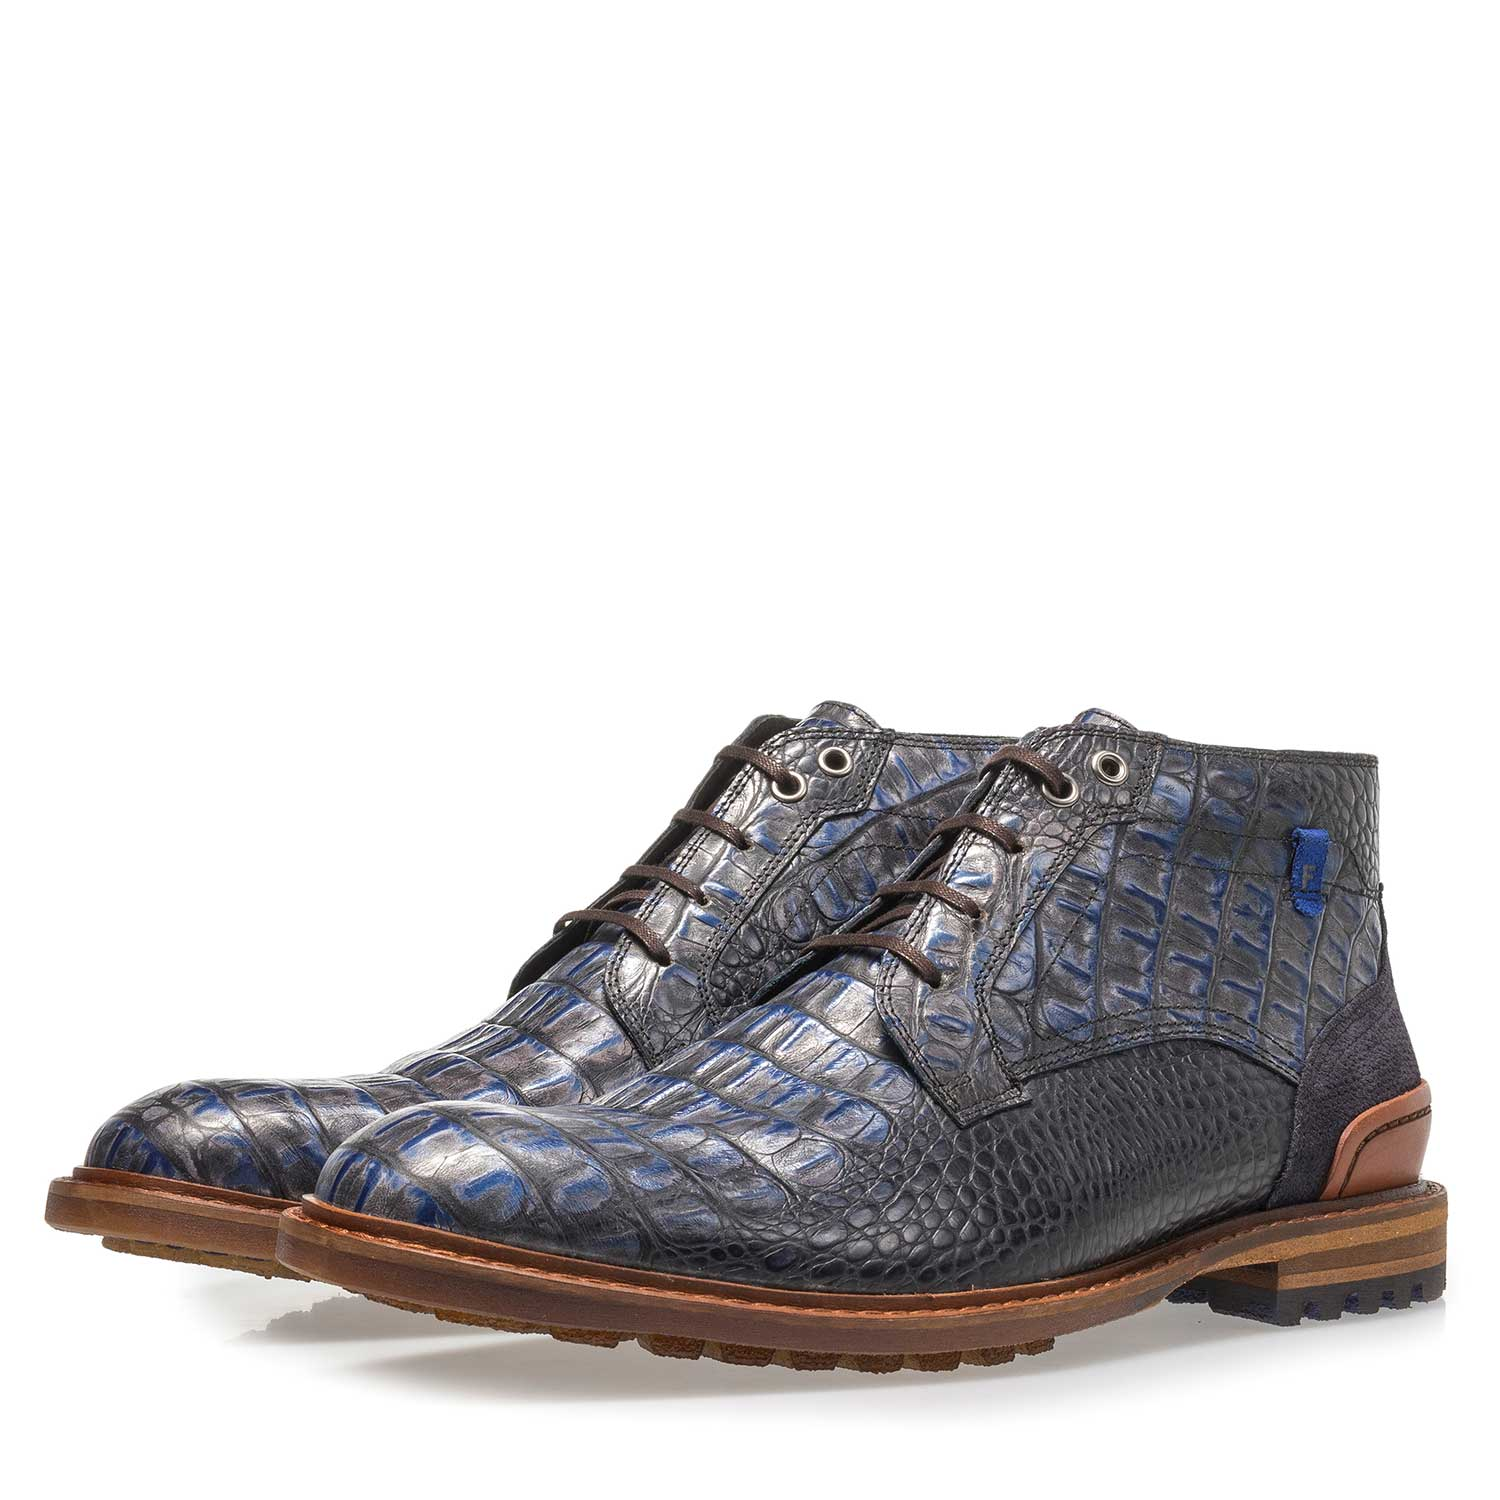 20228/23 - Blue leather lace boot with croco print